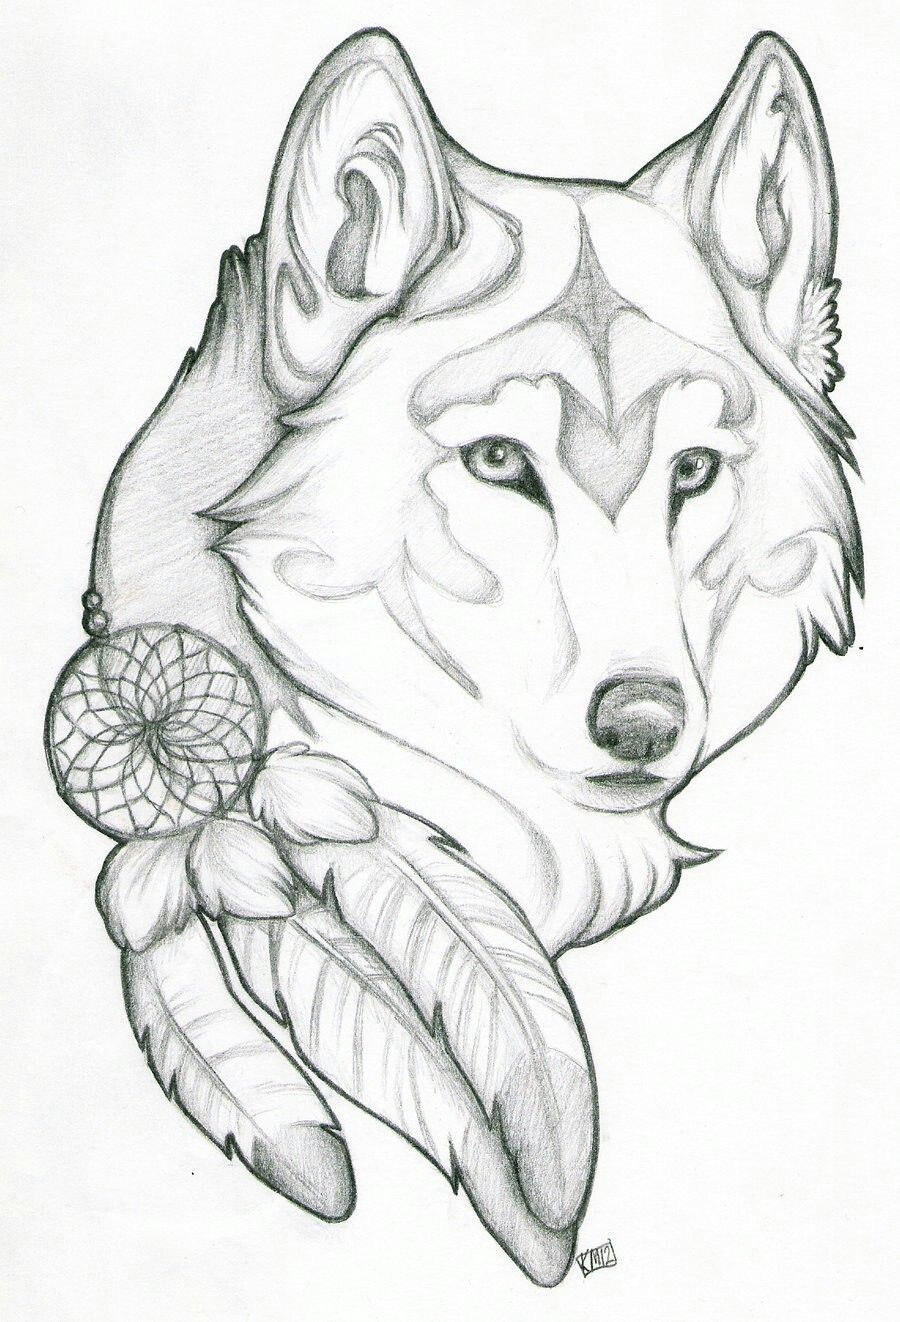 Wolf Dreamcatcher Drawing : dreamcatcher, drawing, Dreamcatcher, Feather, Drawings,, Sketch,, Drawings